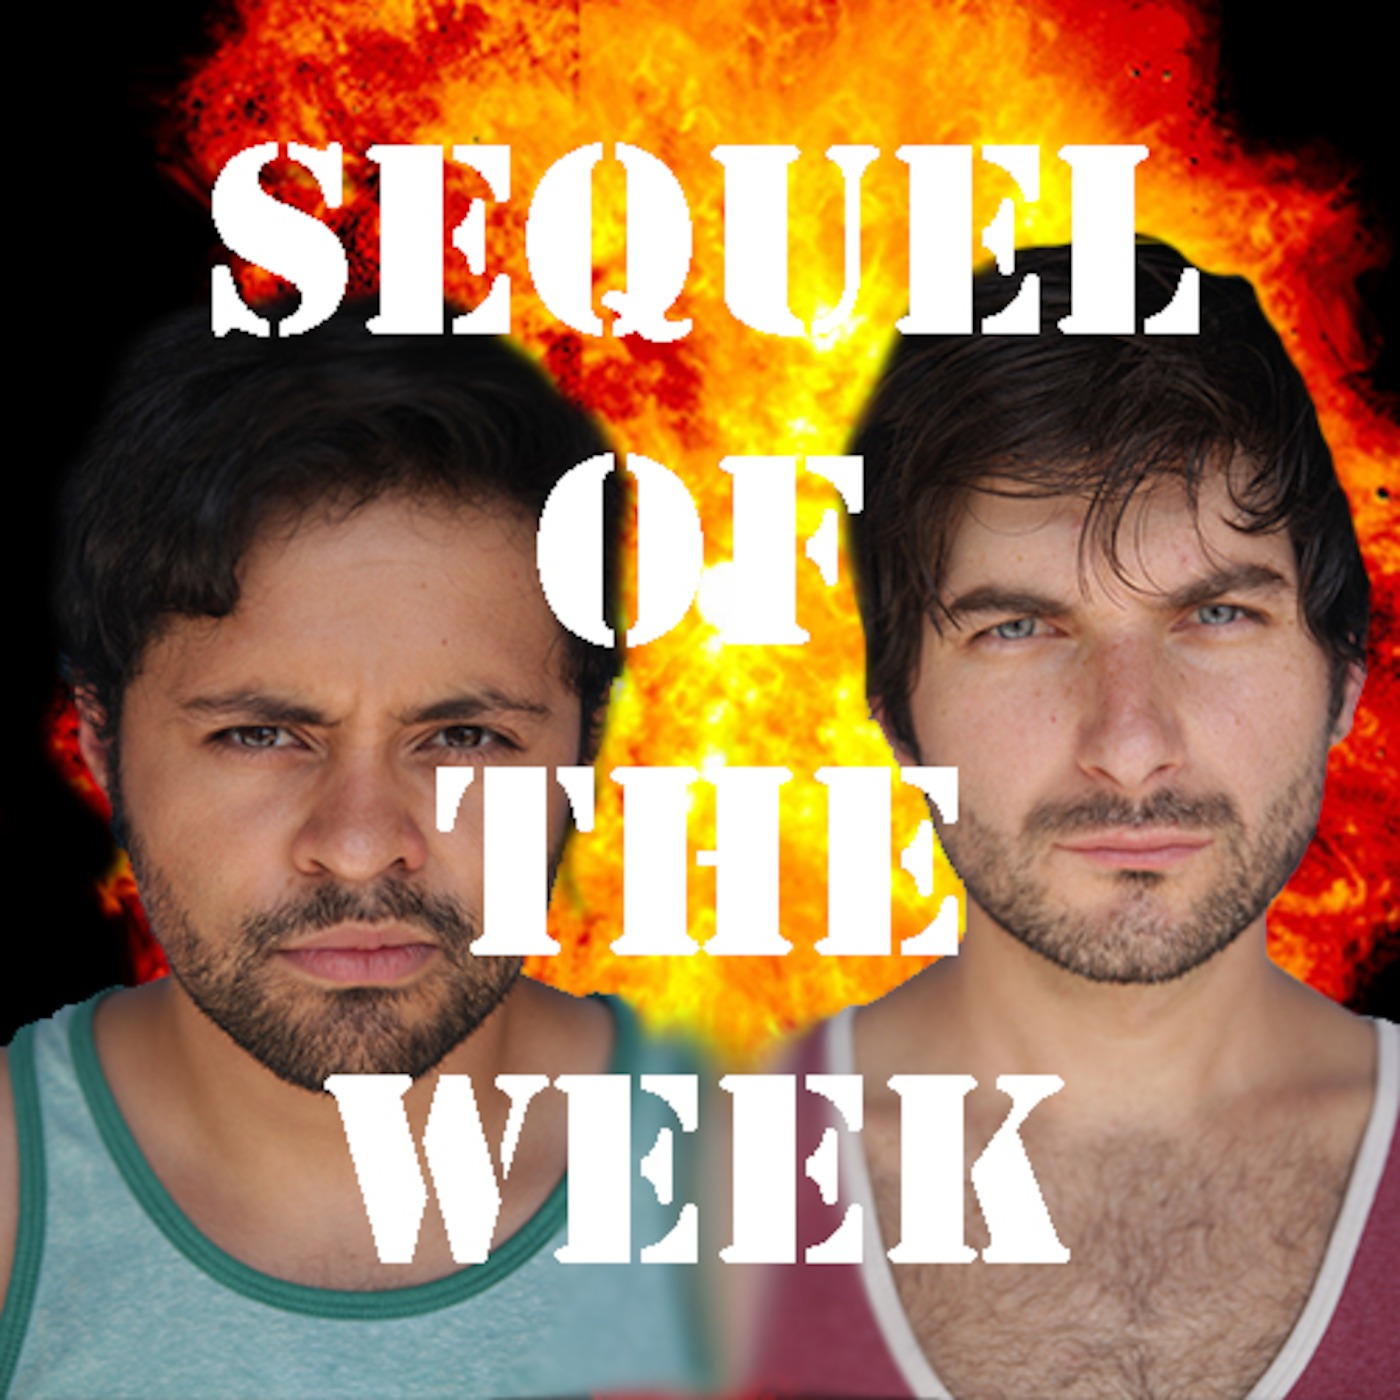 Sequel of the Week